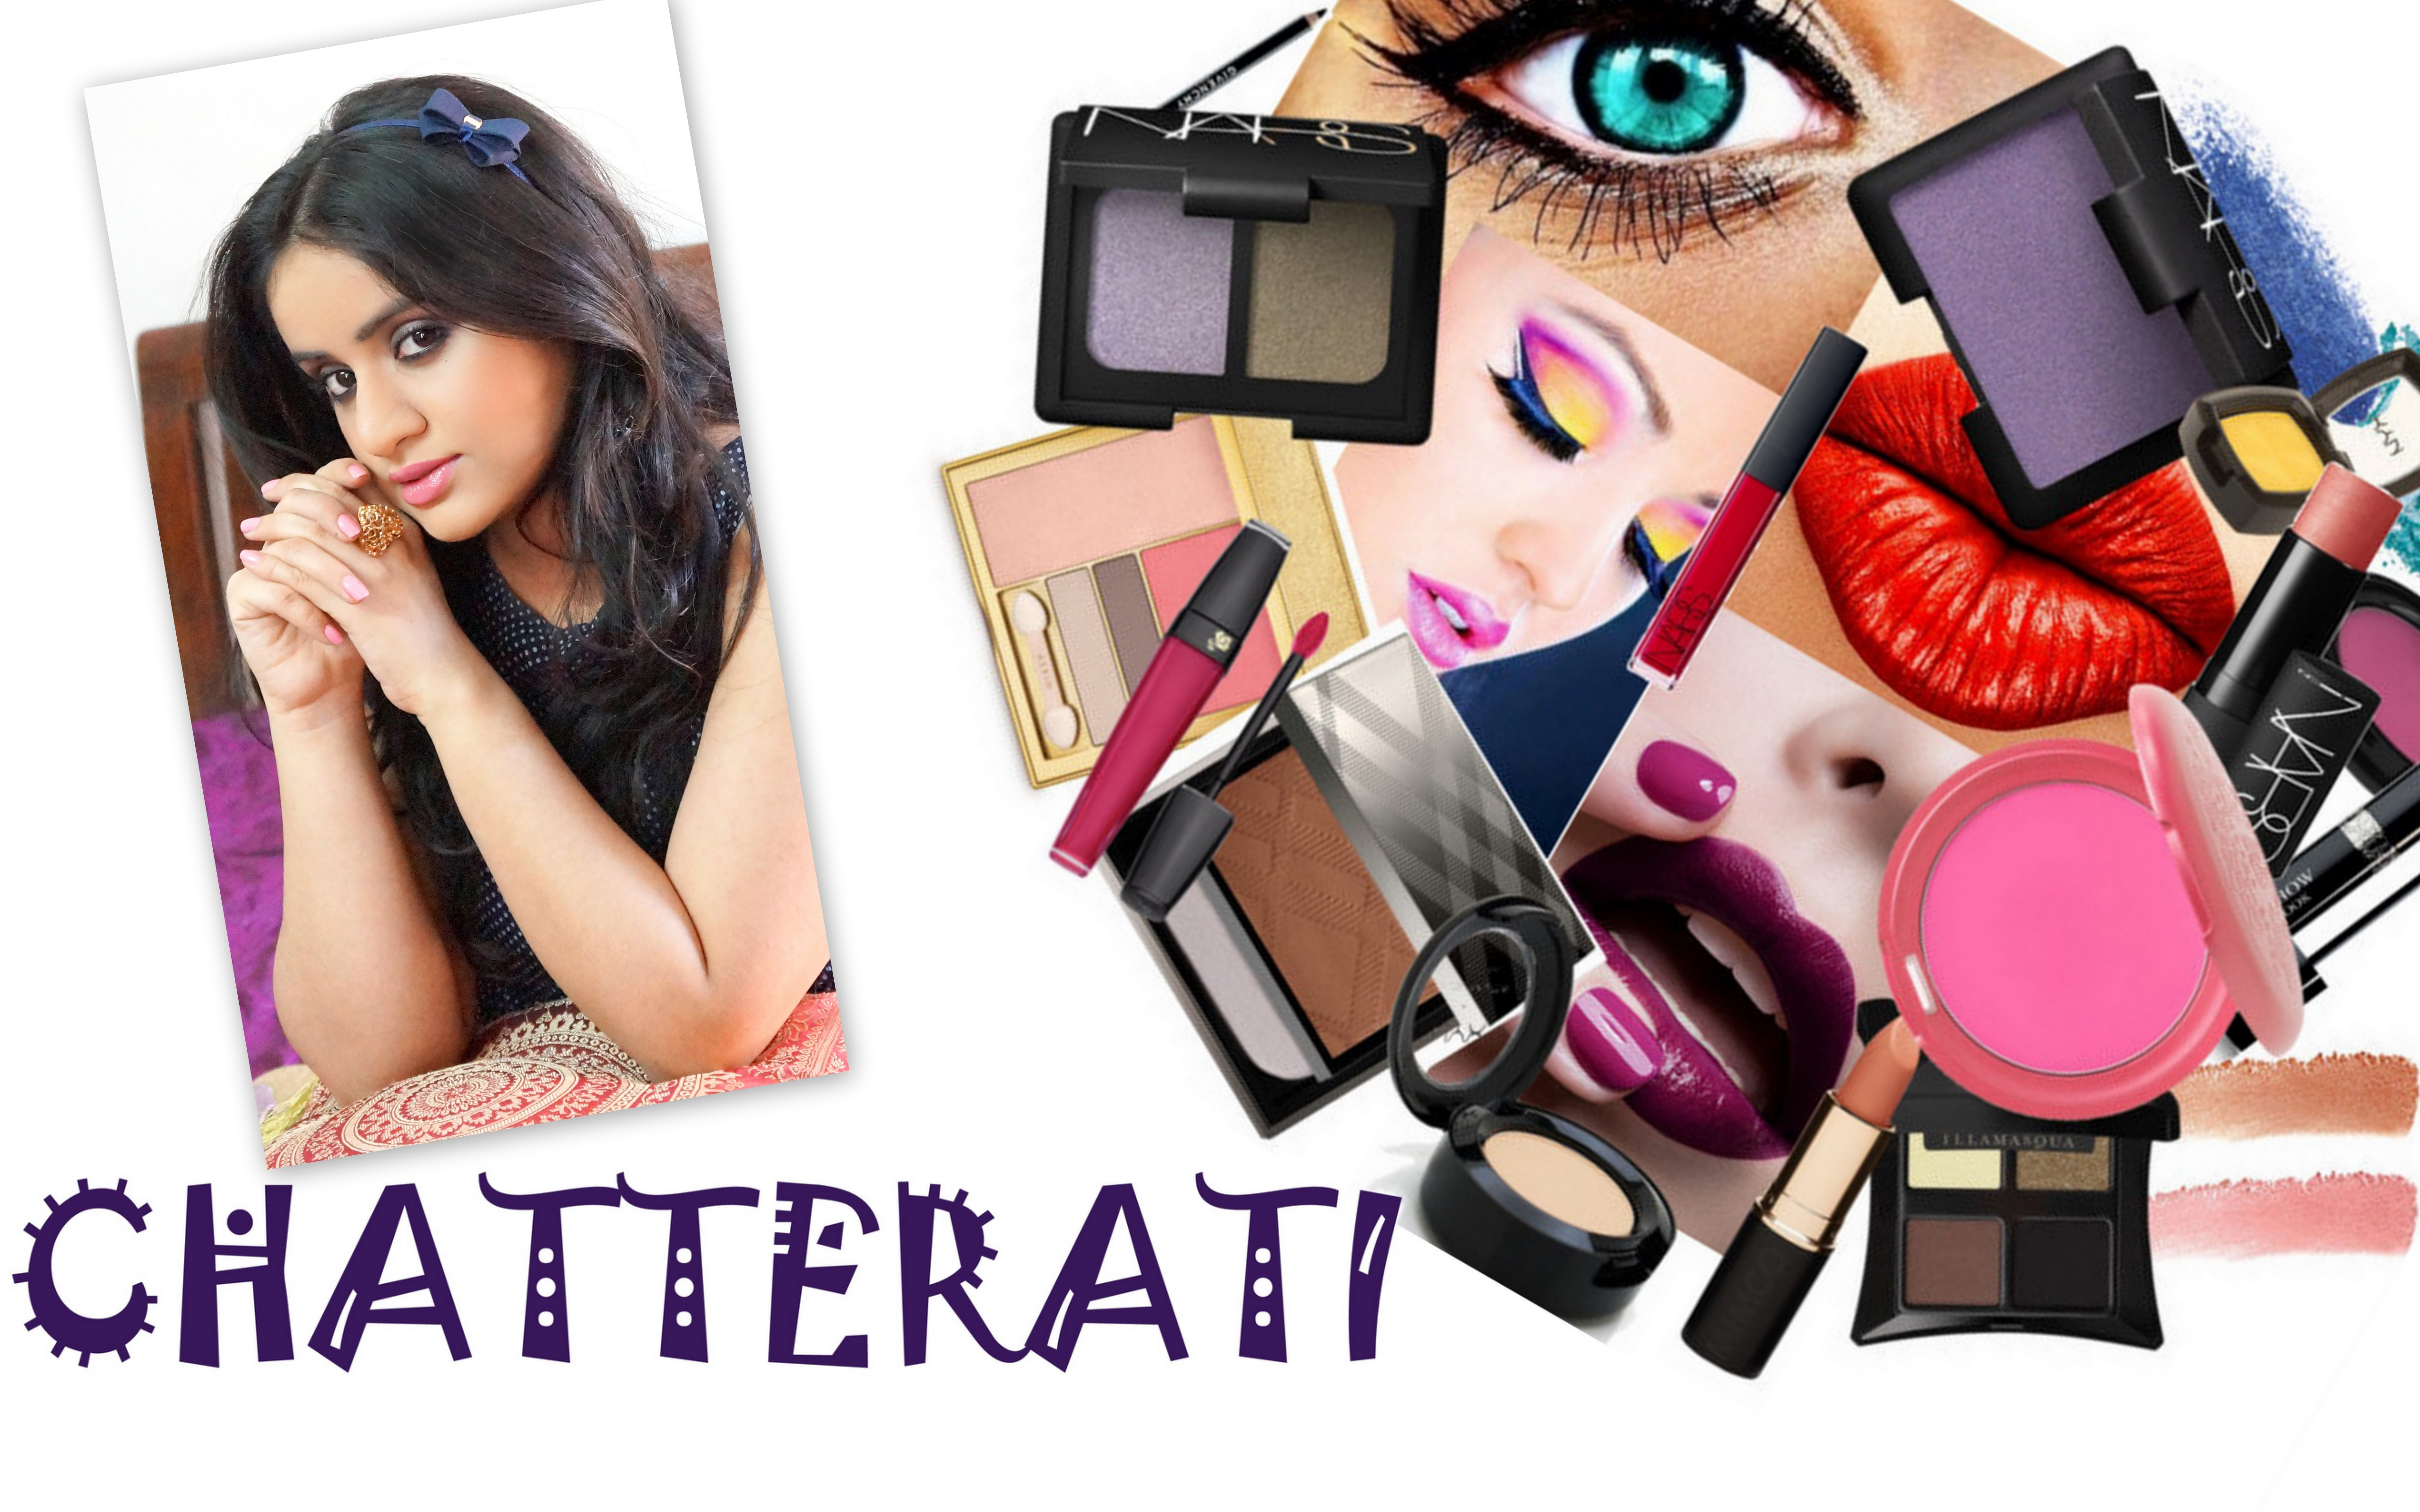 CHATTERATI : Meet Lisha of Heart Bows & Makeup